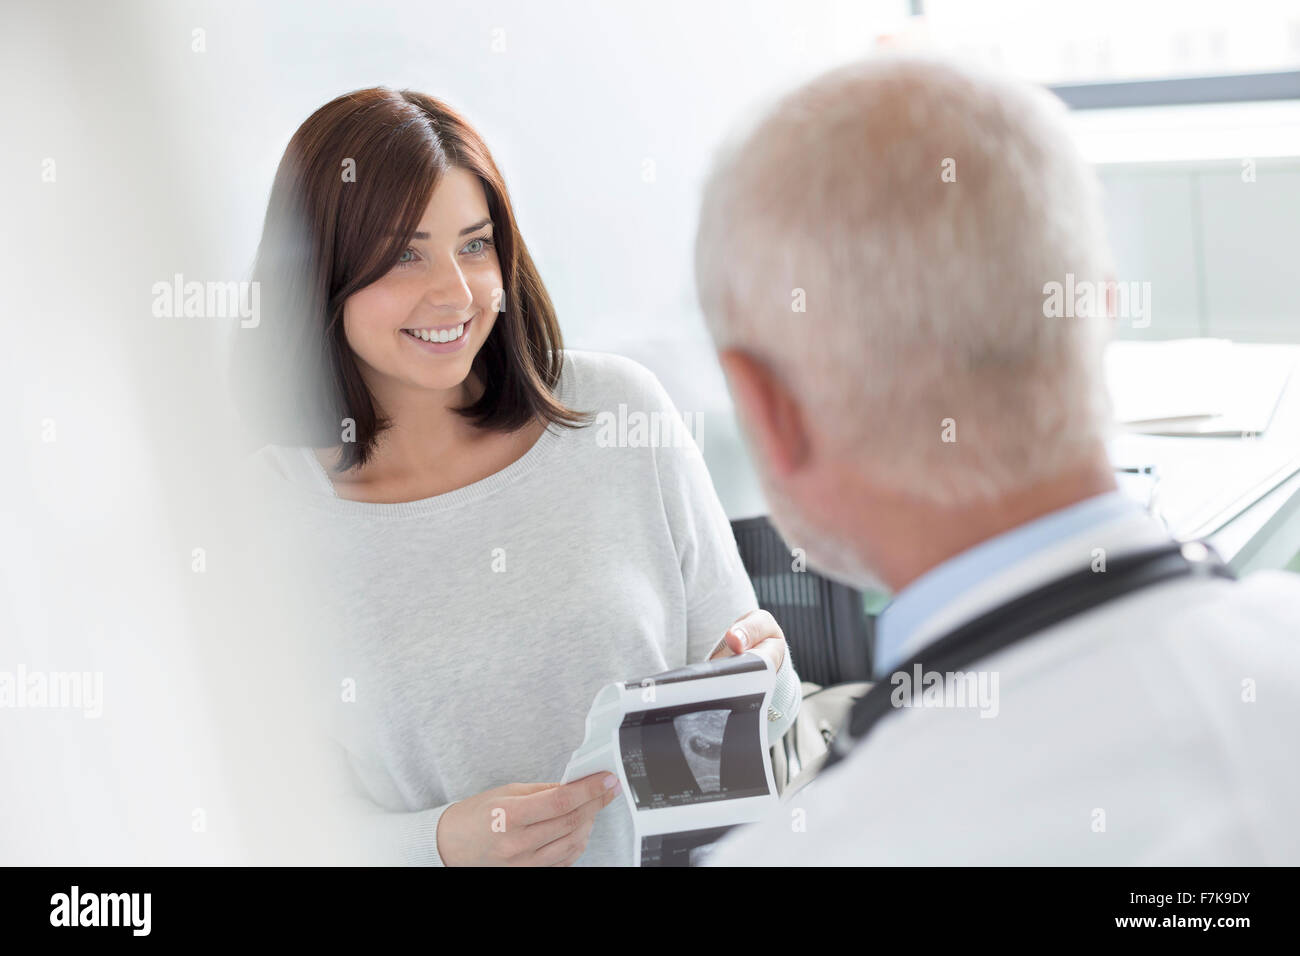 Doctor and patient looking at ultrasound x-rays in doctor's office - Stock Image